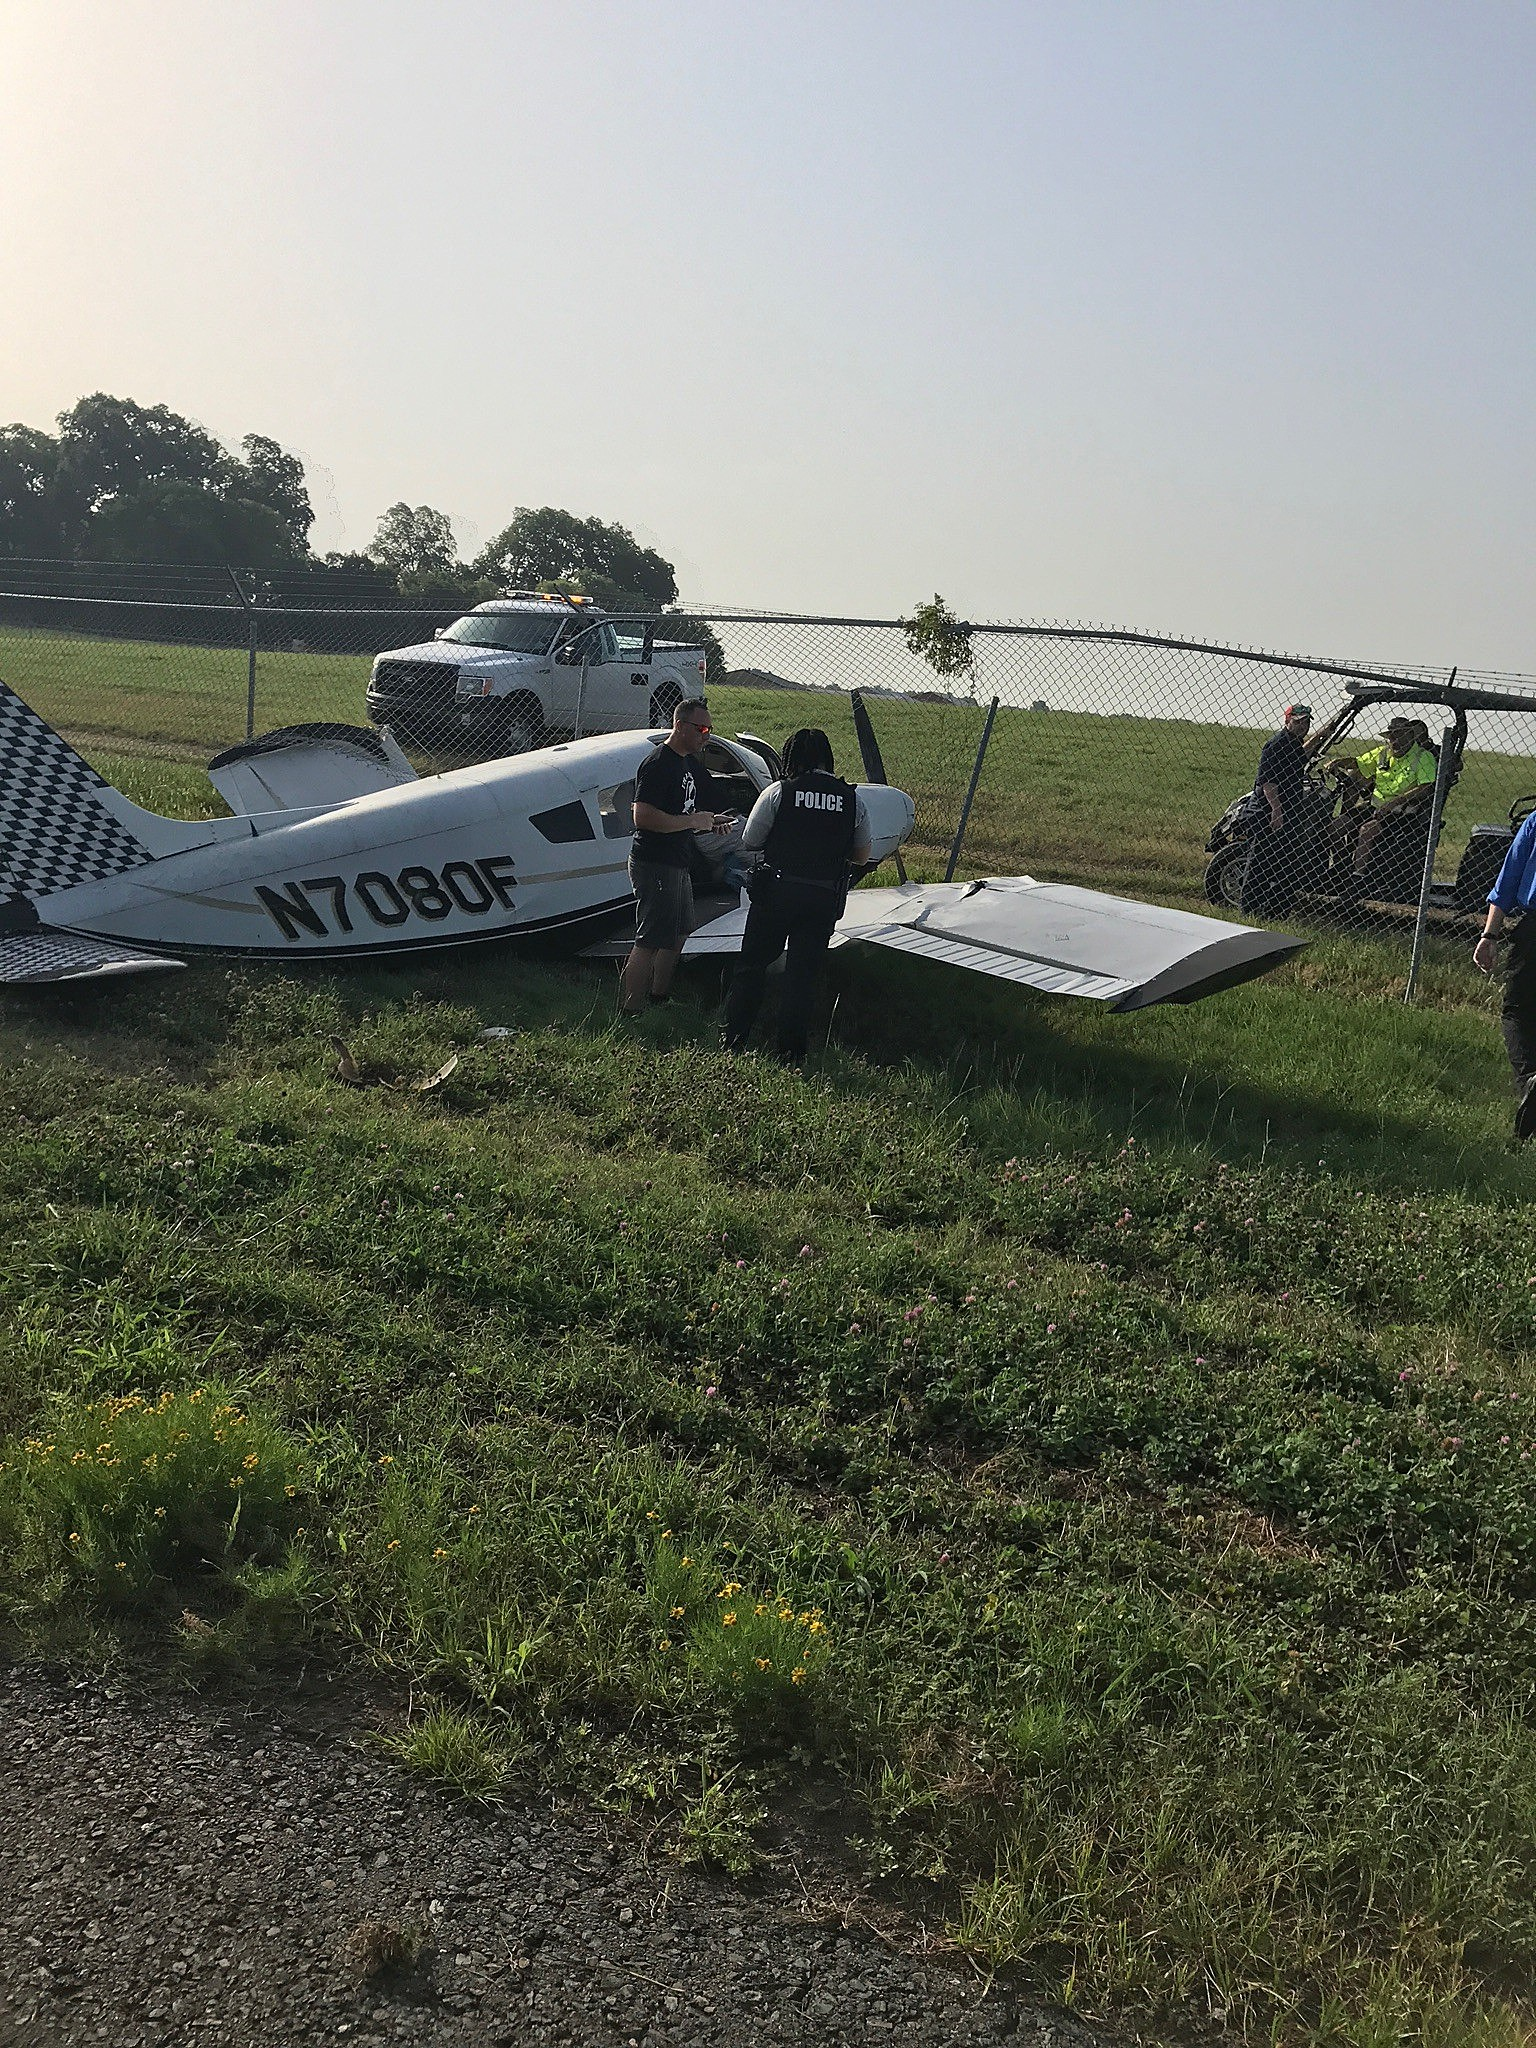 Officials Recounting Downed Plane In East Texas Photo Crashed Aircraft Beacon